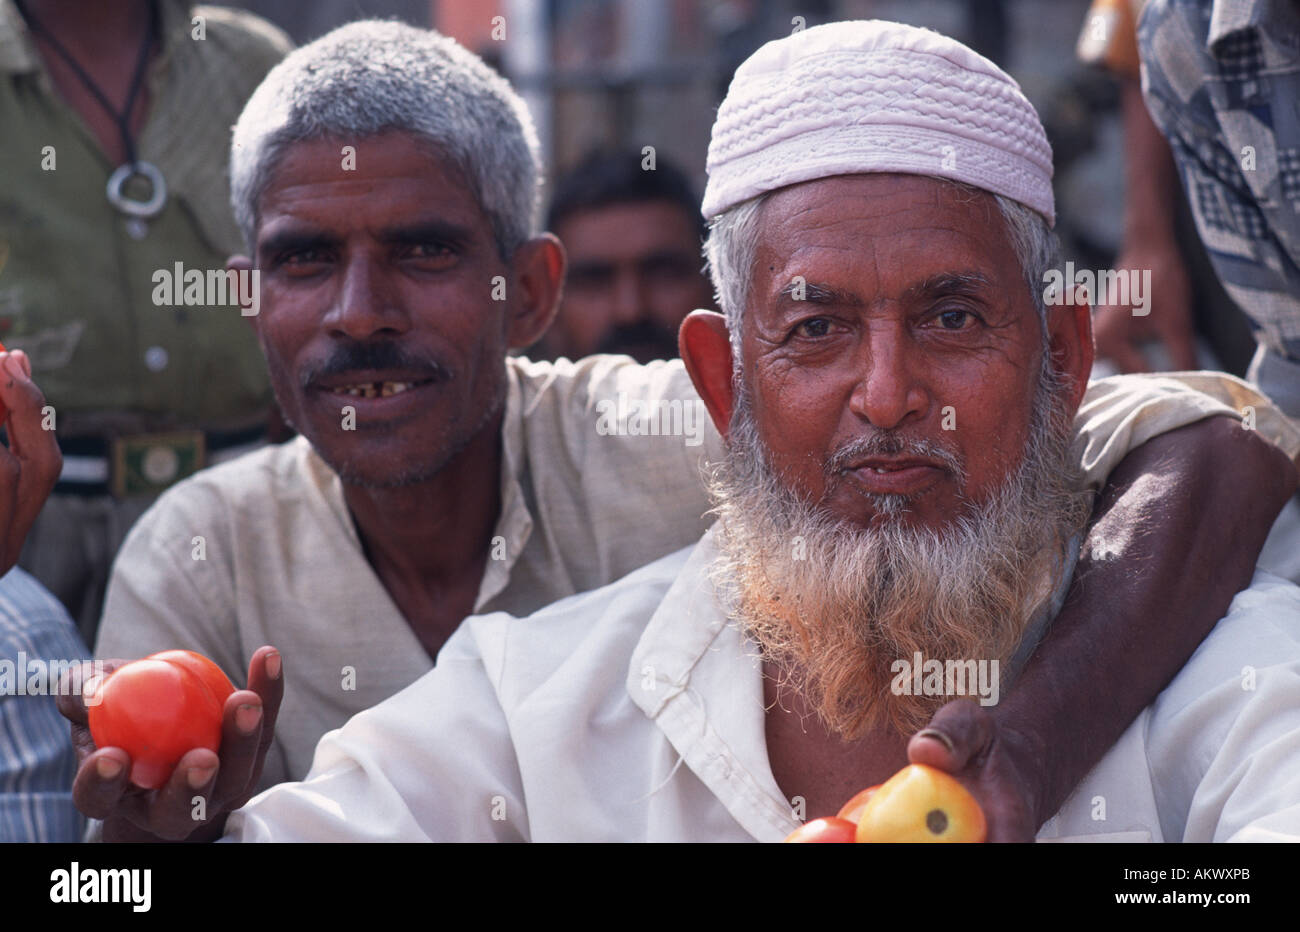 Indian men at the vegetable market Agra India - Stock Image